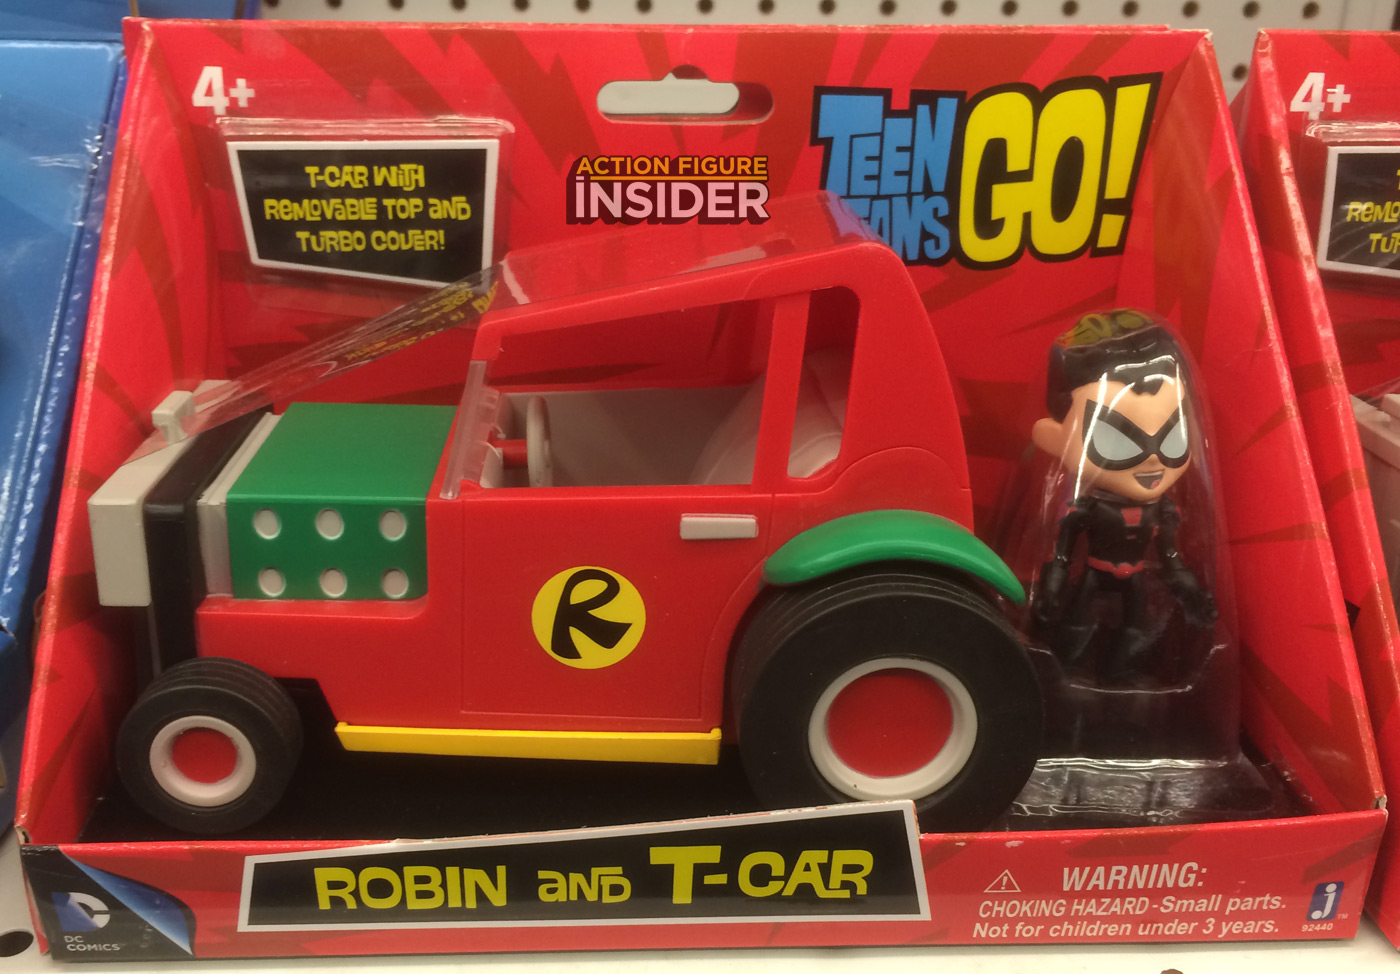 Teen Titan Toy : Action figure insider new teen titans go figures from